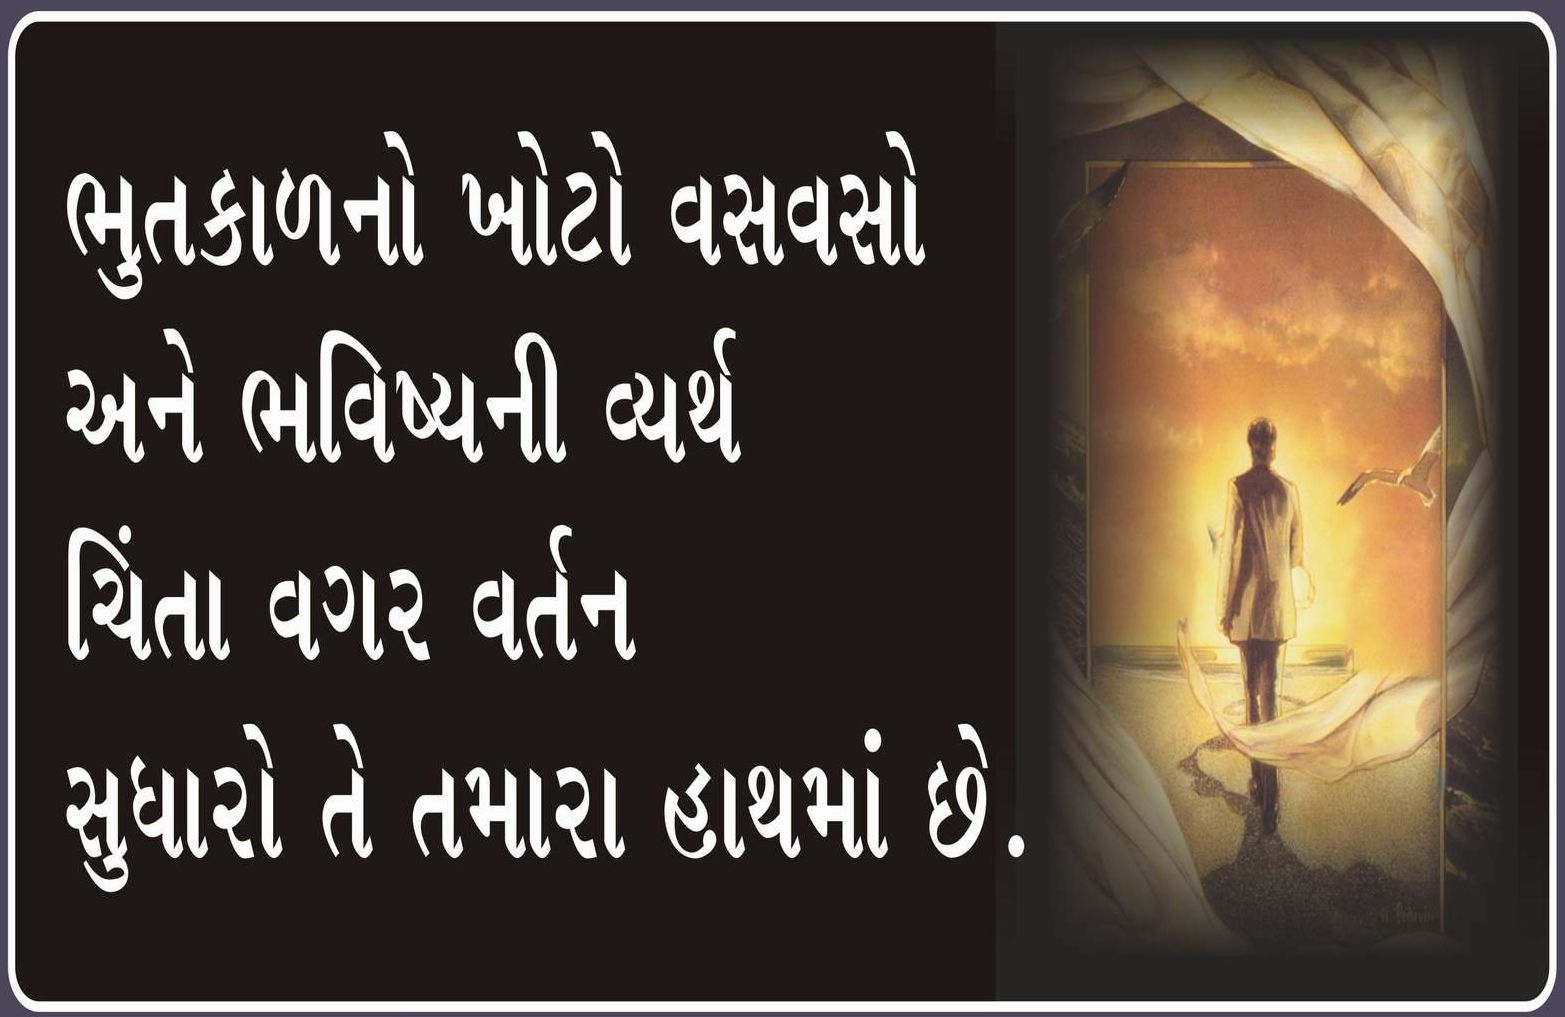 15 gujarati quotes with image funny 7 gujarati quotes with image